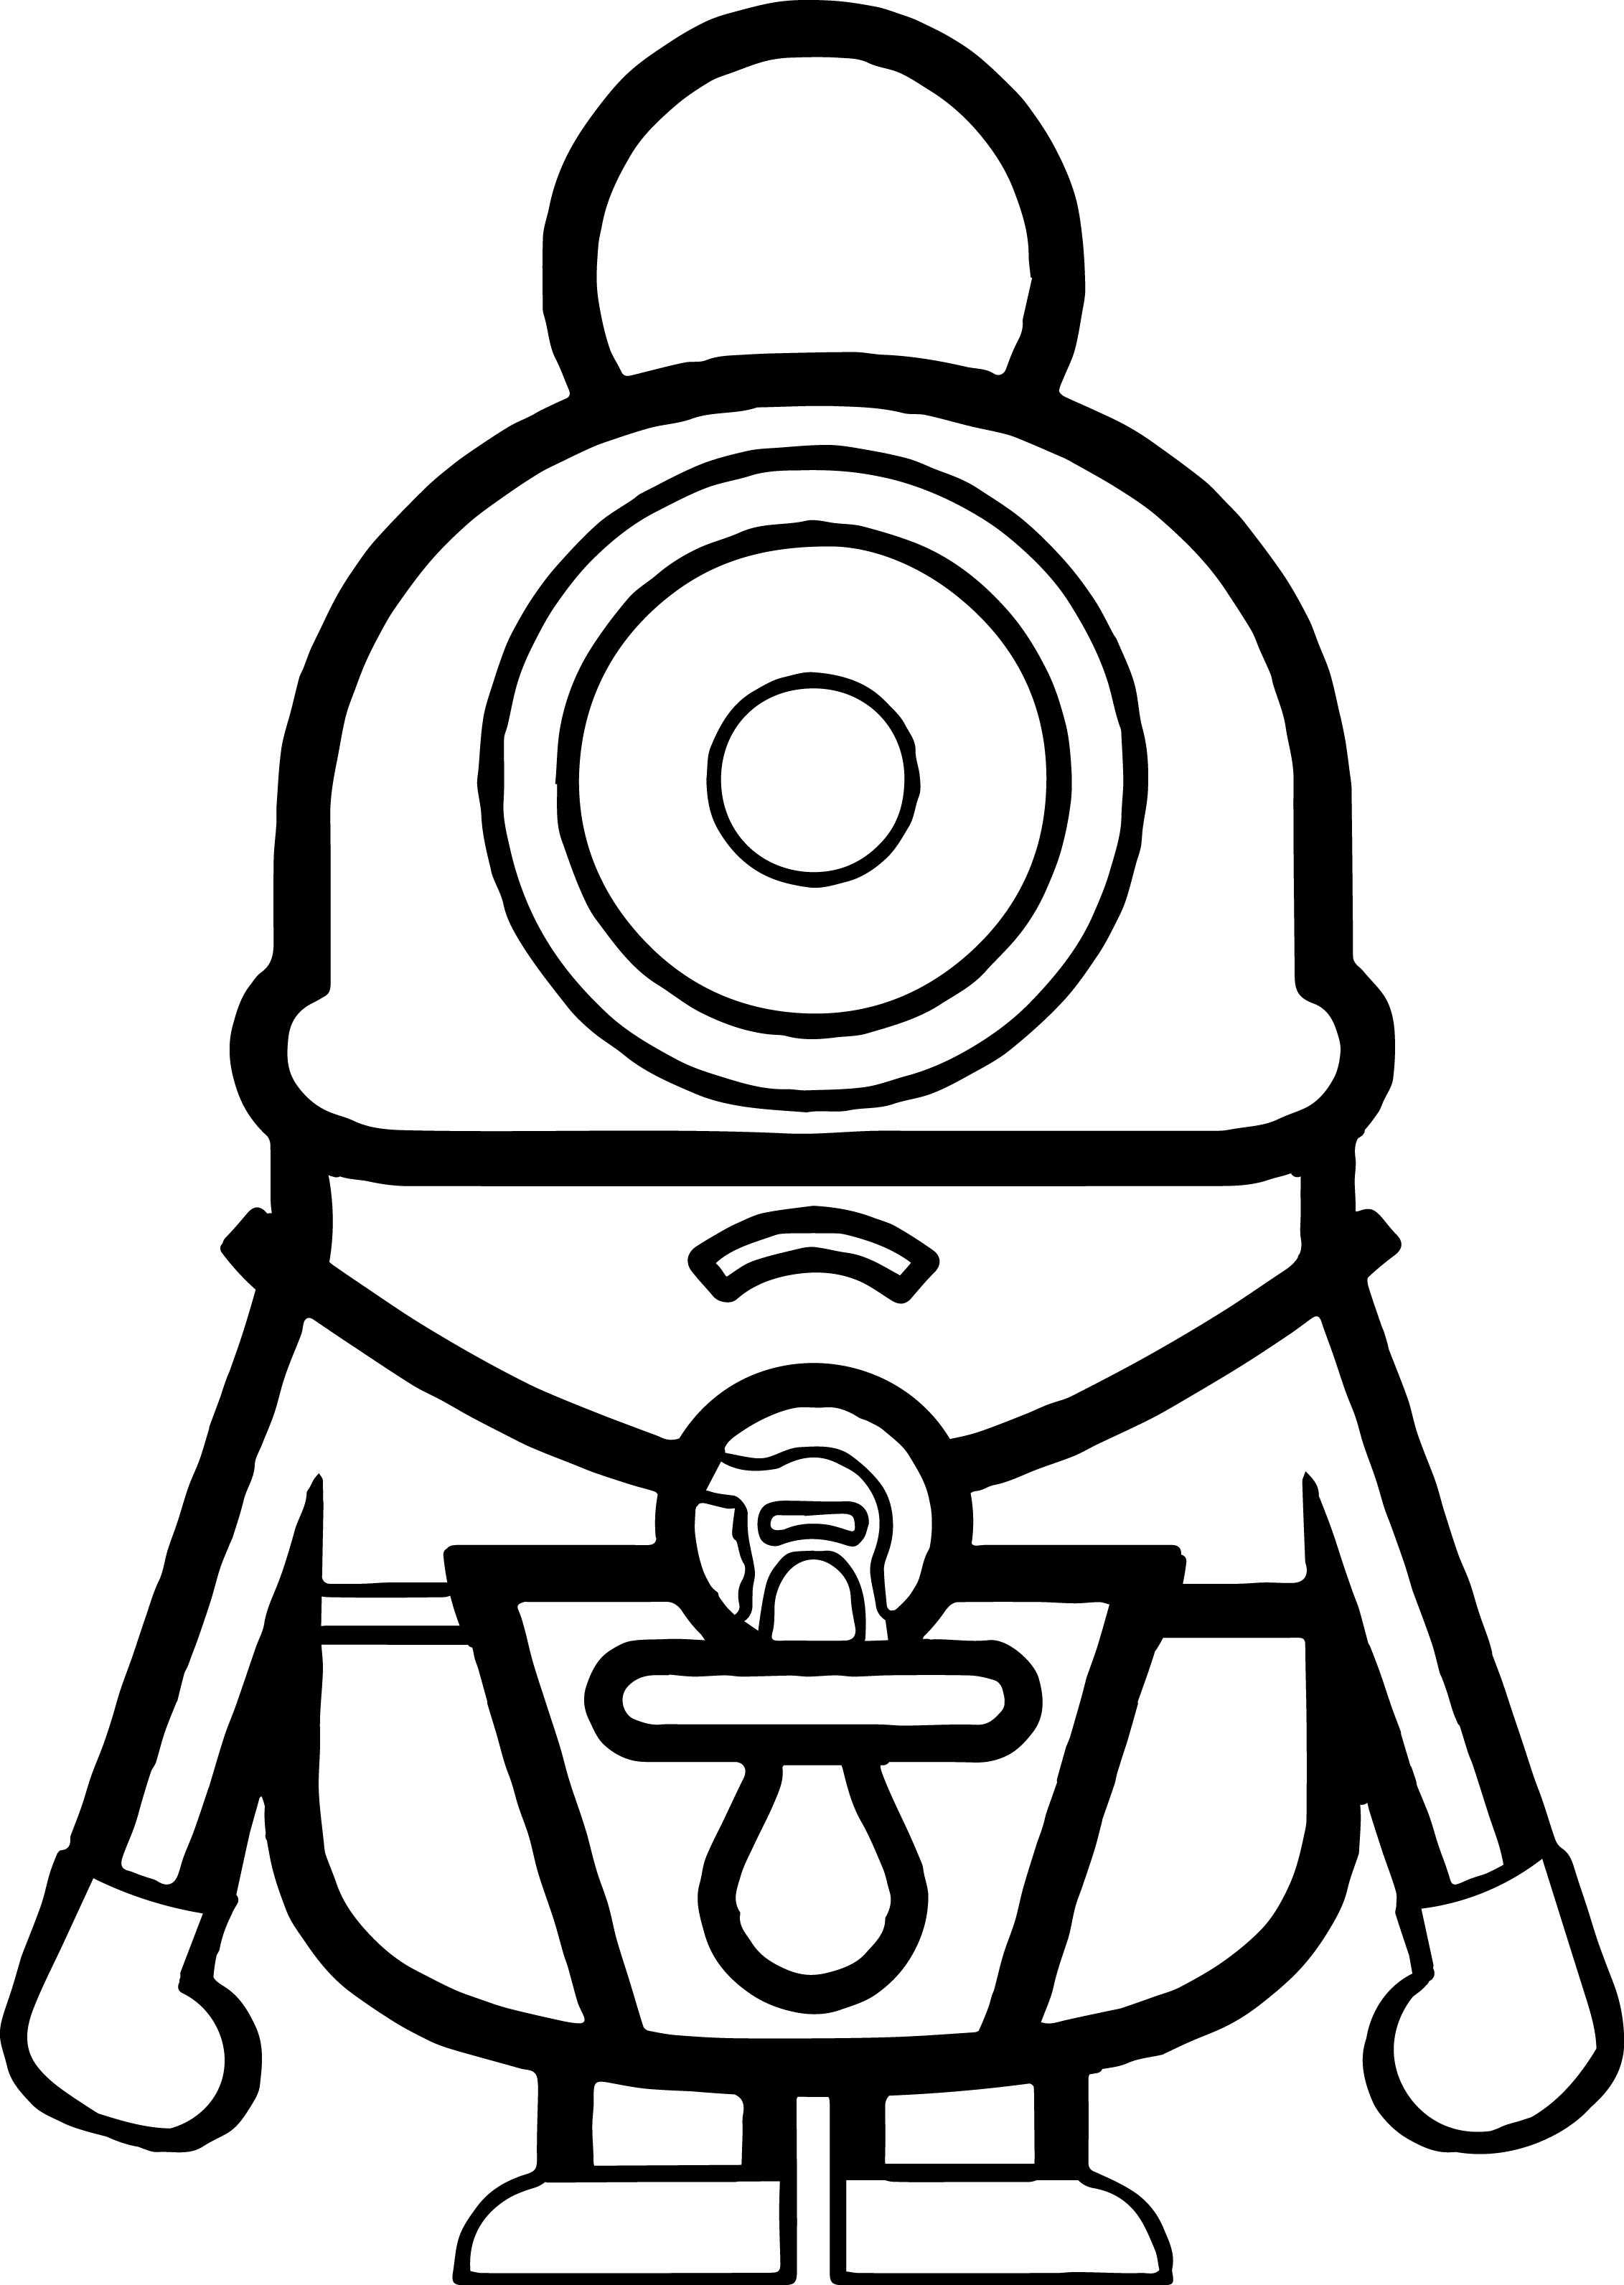 Cute Minion Coloring Pages SaveEnlarge